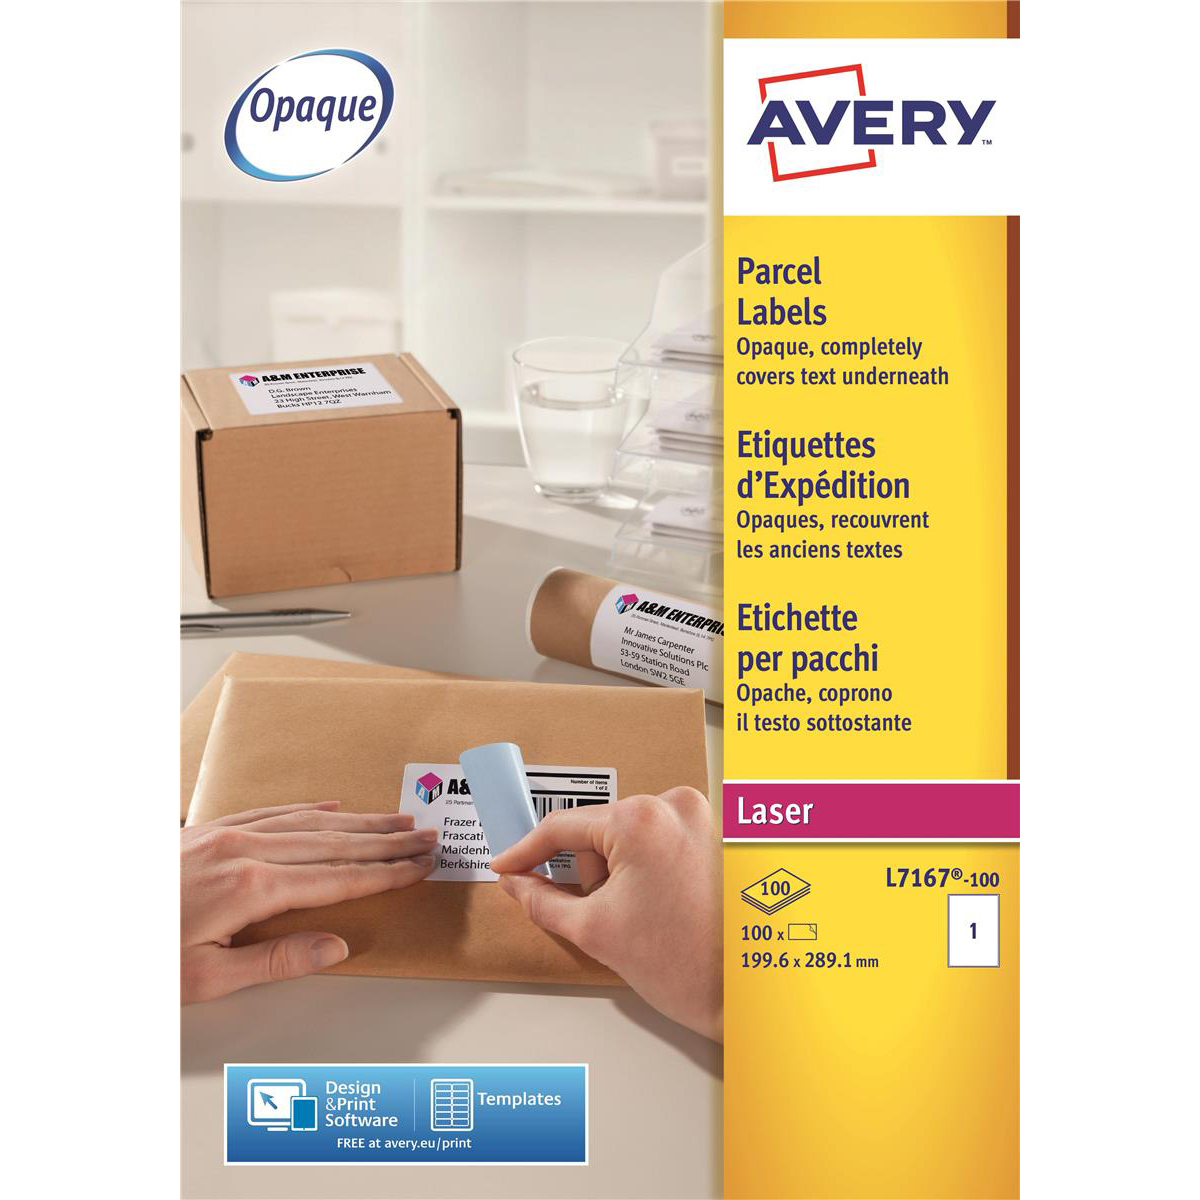 Avery Parcel Labels Laser Jam-free 1 per Sheet 199.6x289.1mm Opaque White Ref L7167-100 [100 Labels]